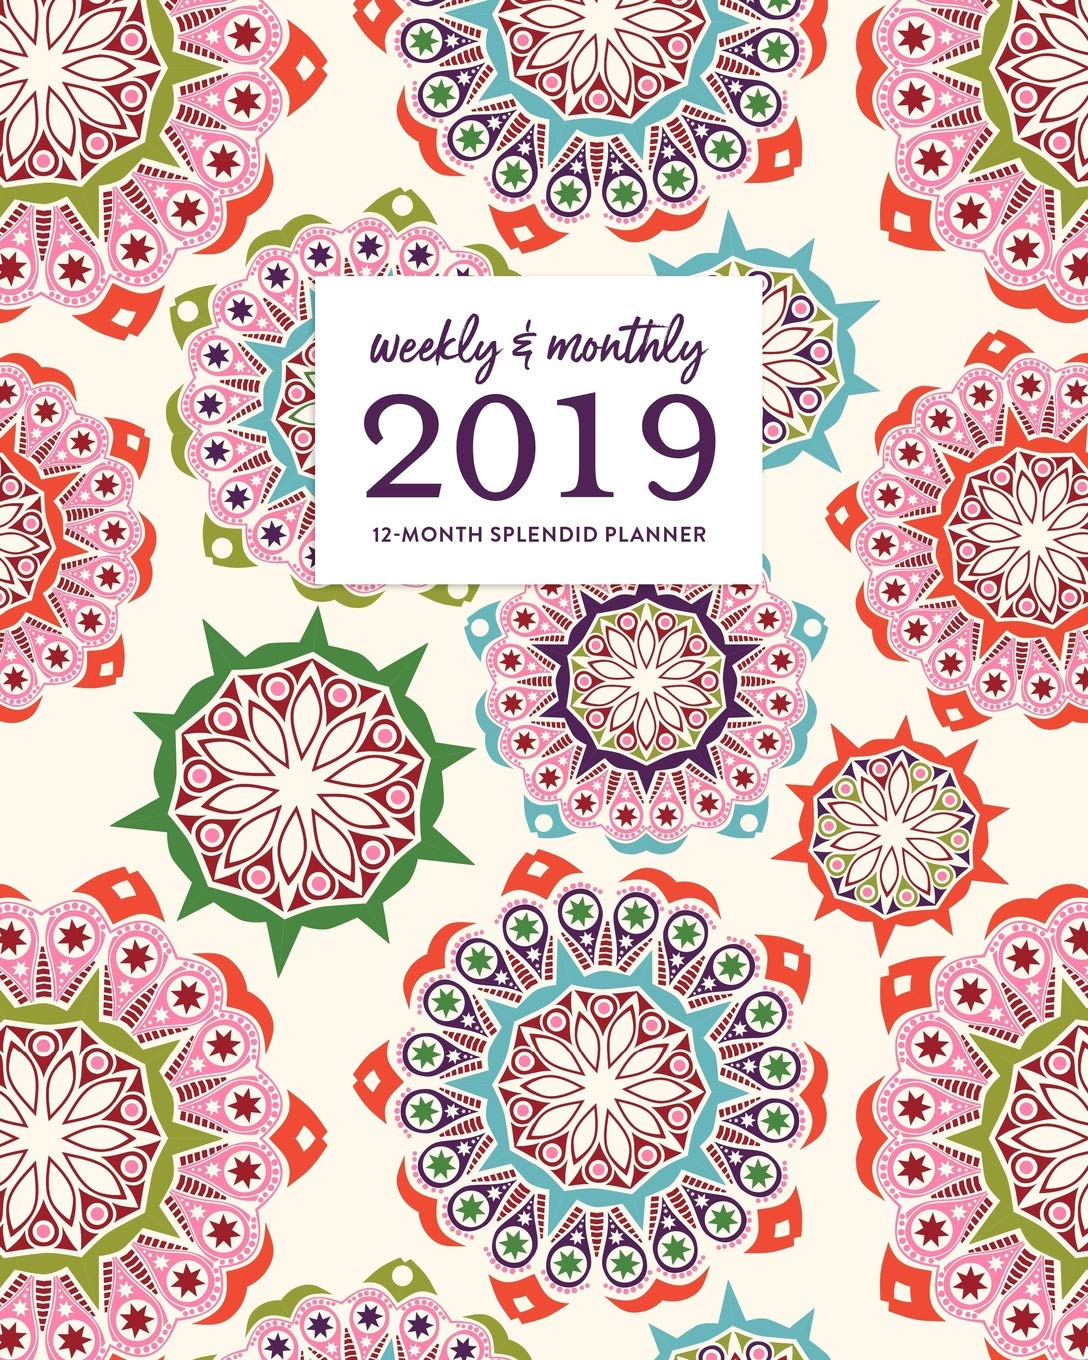 Weekly & Monthly 2019 12-Month Splendid Planner: Colorful ...